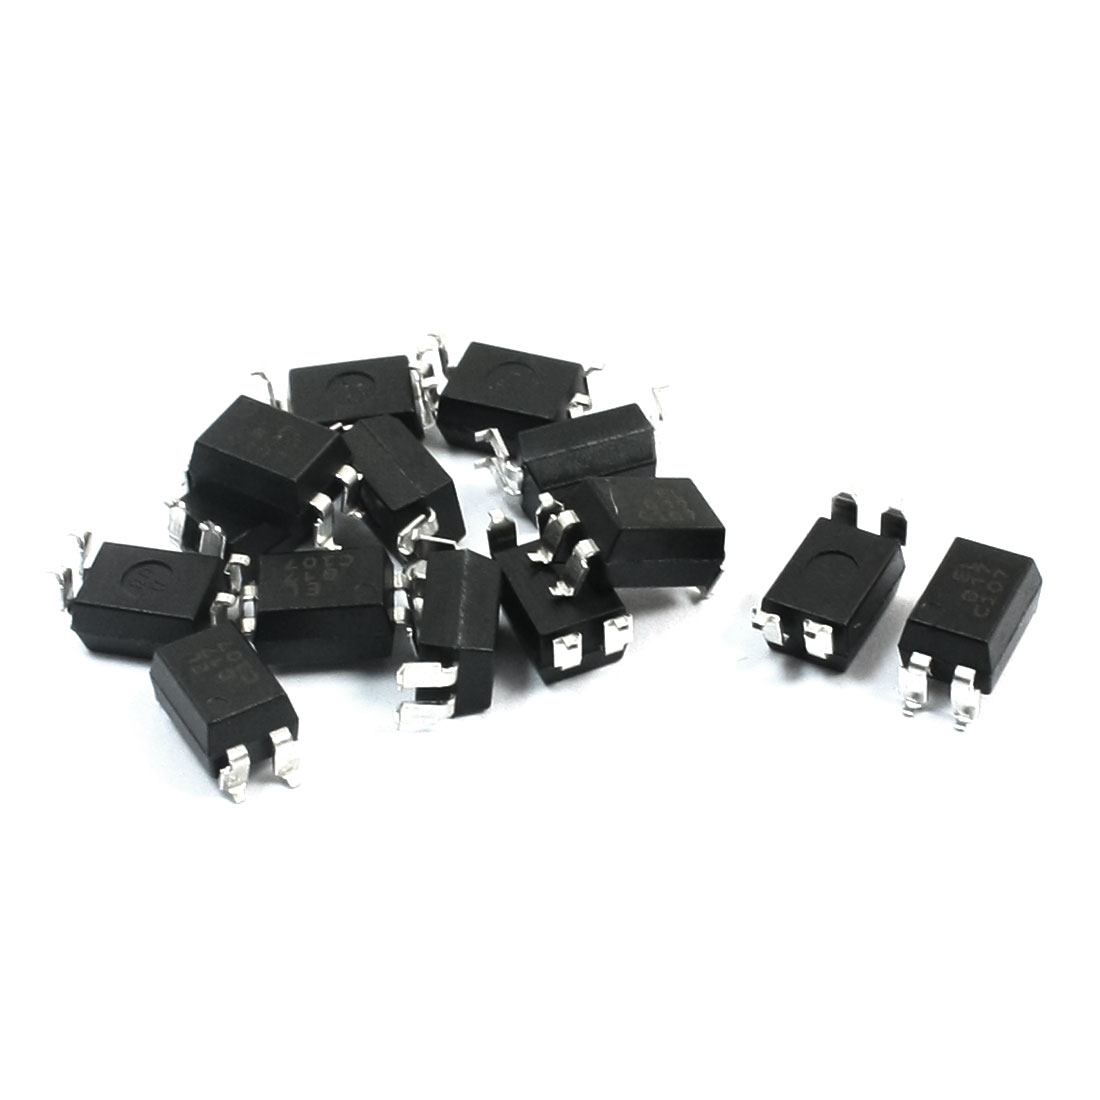 EL817S SOP-4 35V 50mA 200mW PCB Surface Mounting SMD SMT Type Optical Coupler Optocoupler IC Chip 15 Pcs